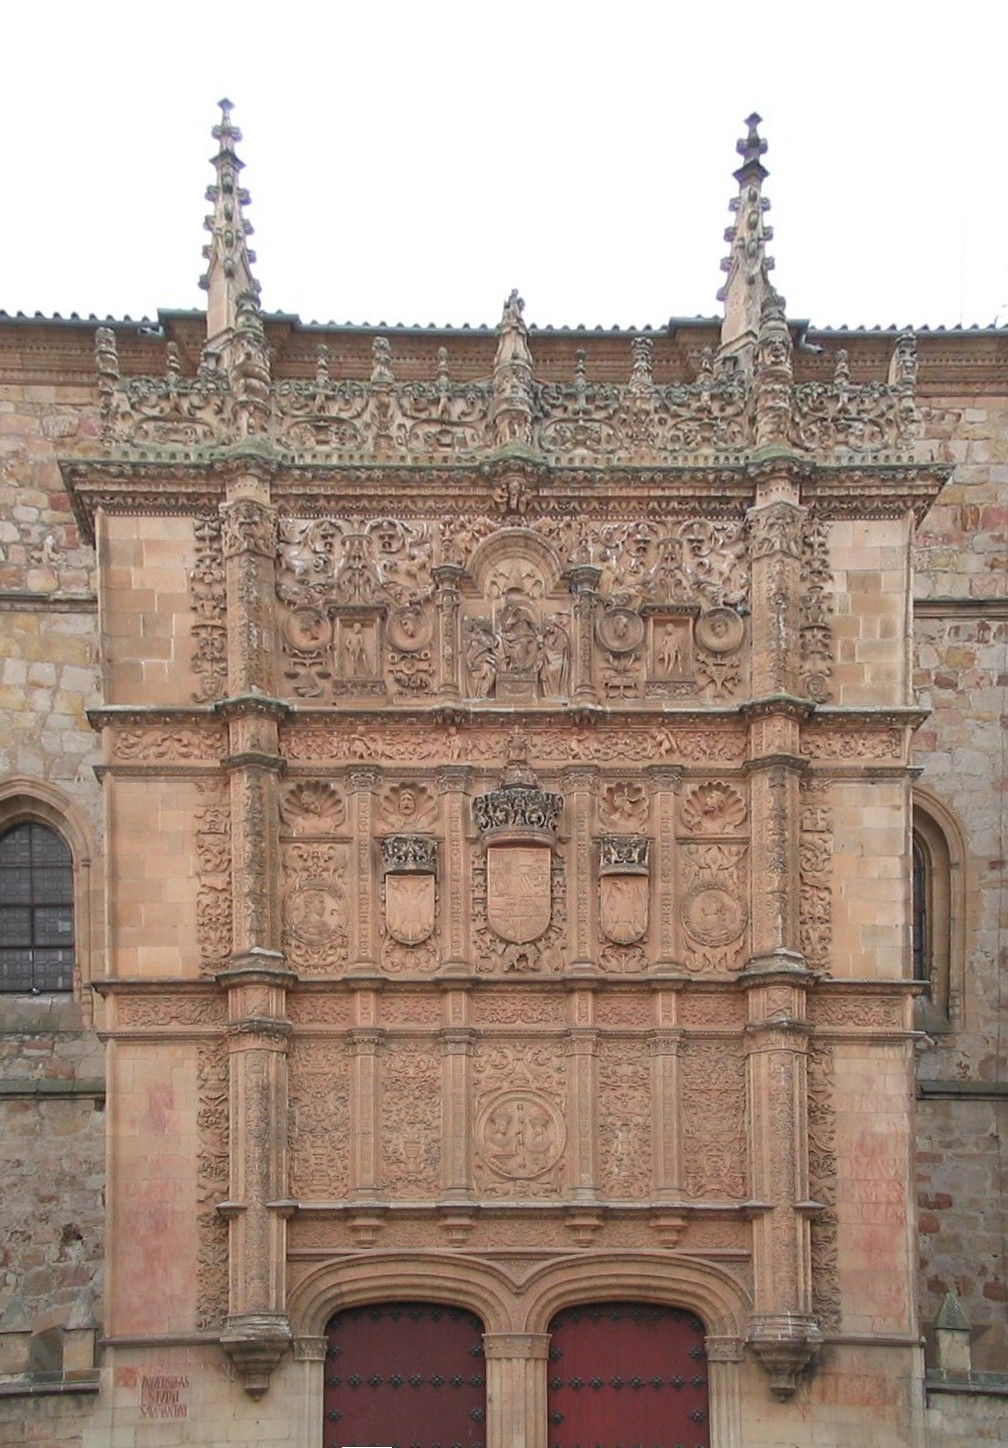 http://upload.wikimedia.org/wikipedia/commons/3/30/University_of_Salamanca.jpg